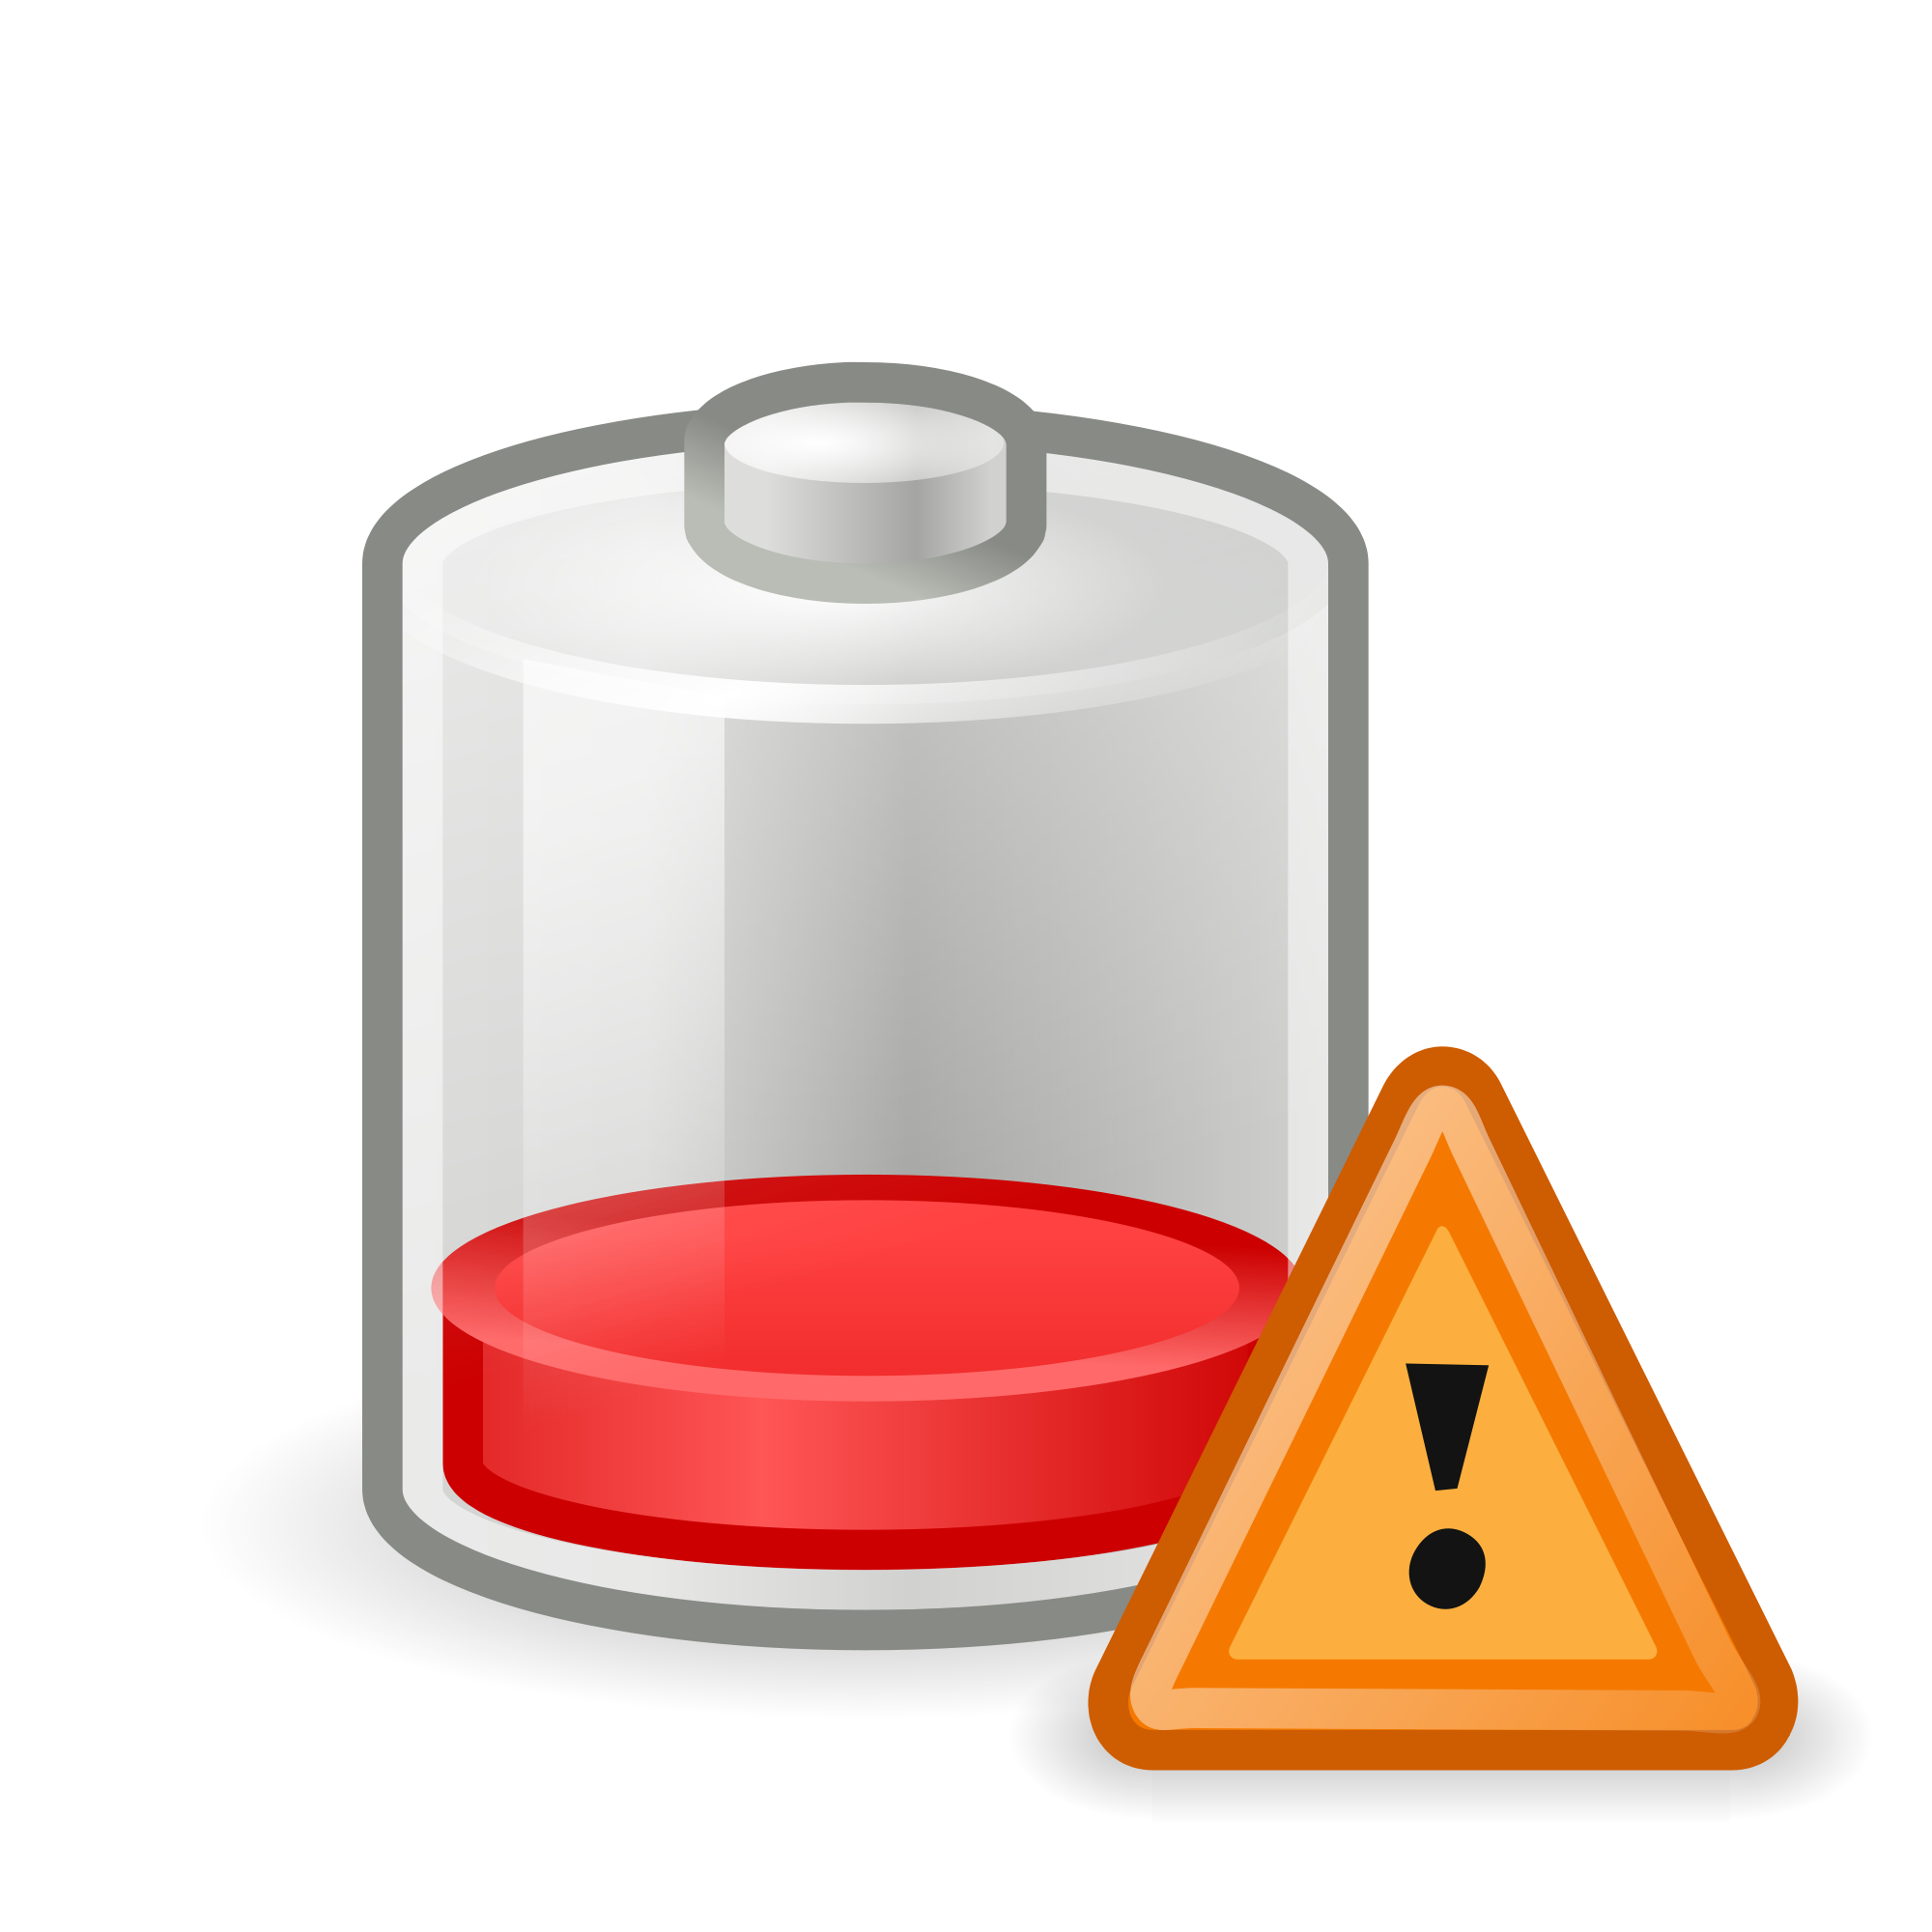 Caution svg #7, Download drawings